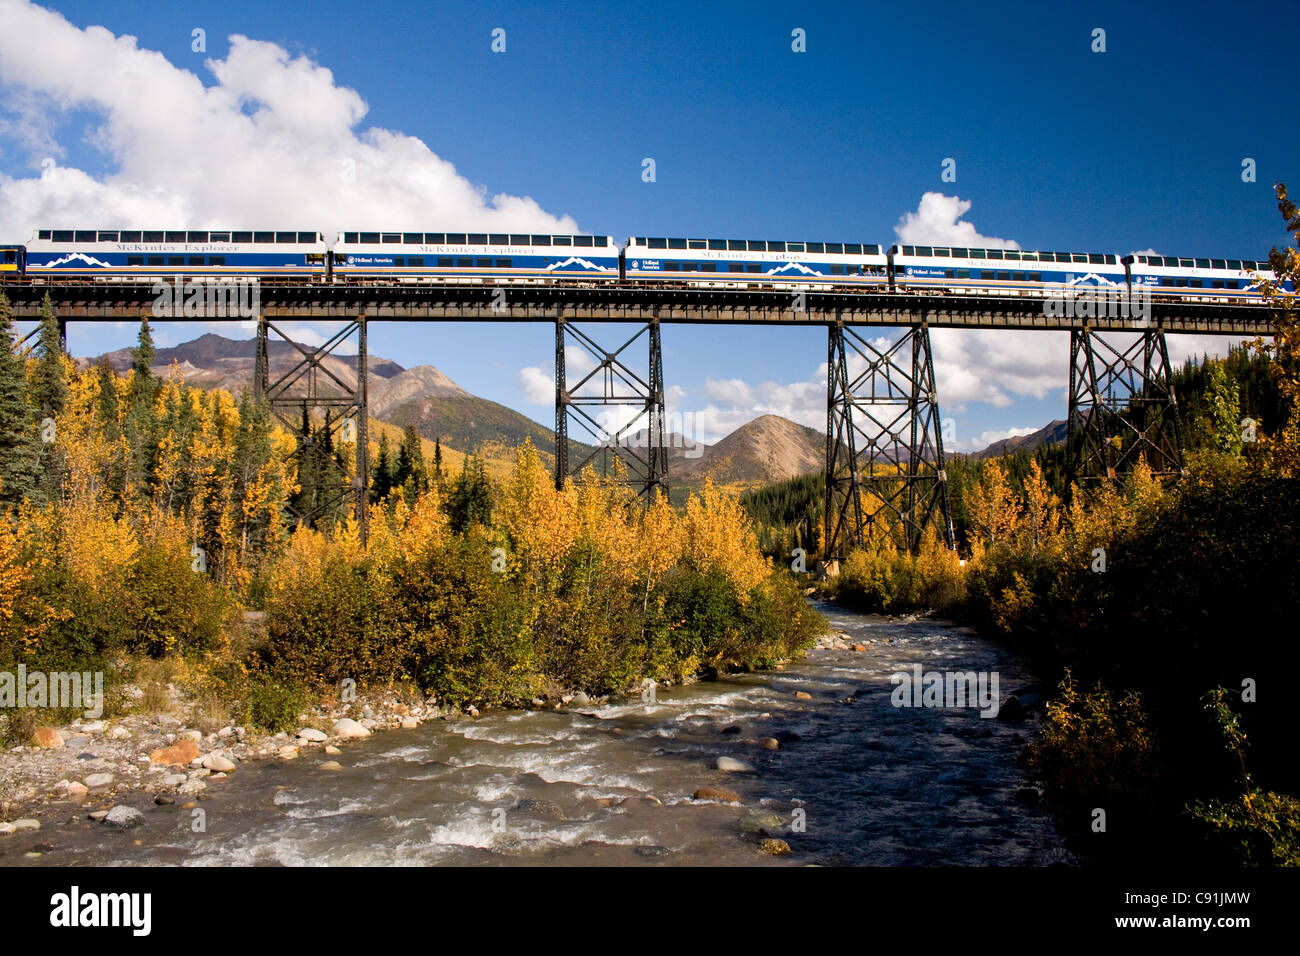 Riley Creek flows under the trestle as an Alaska Railroad train and Holland America's McKinley Explorer crosses, - Stock Image